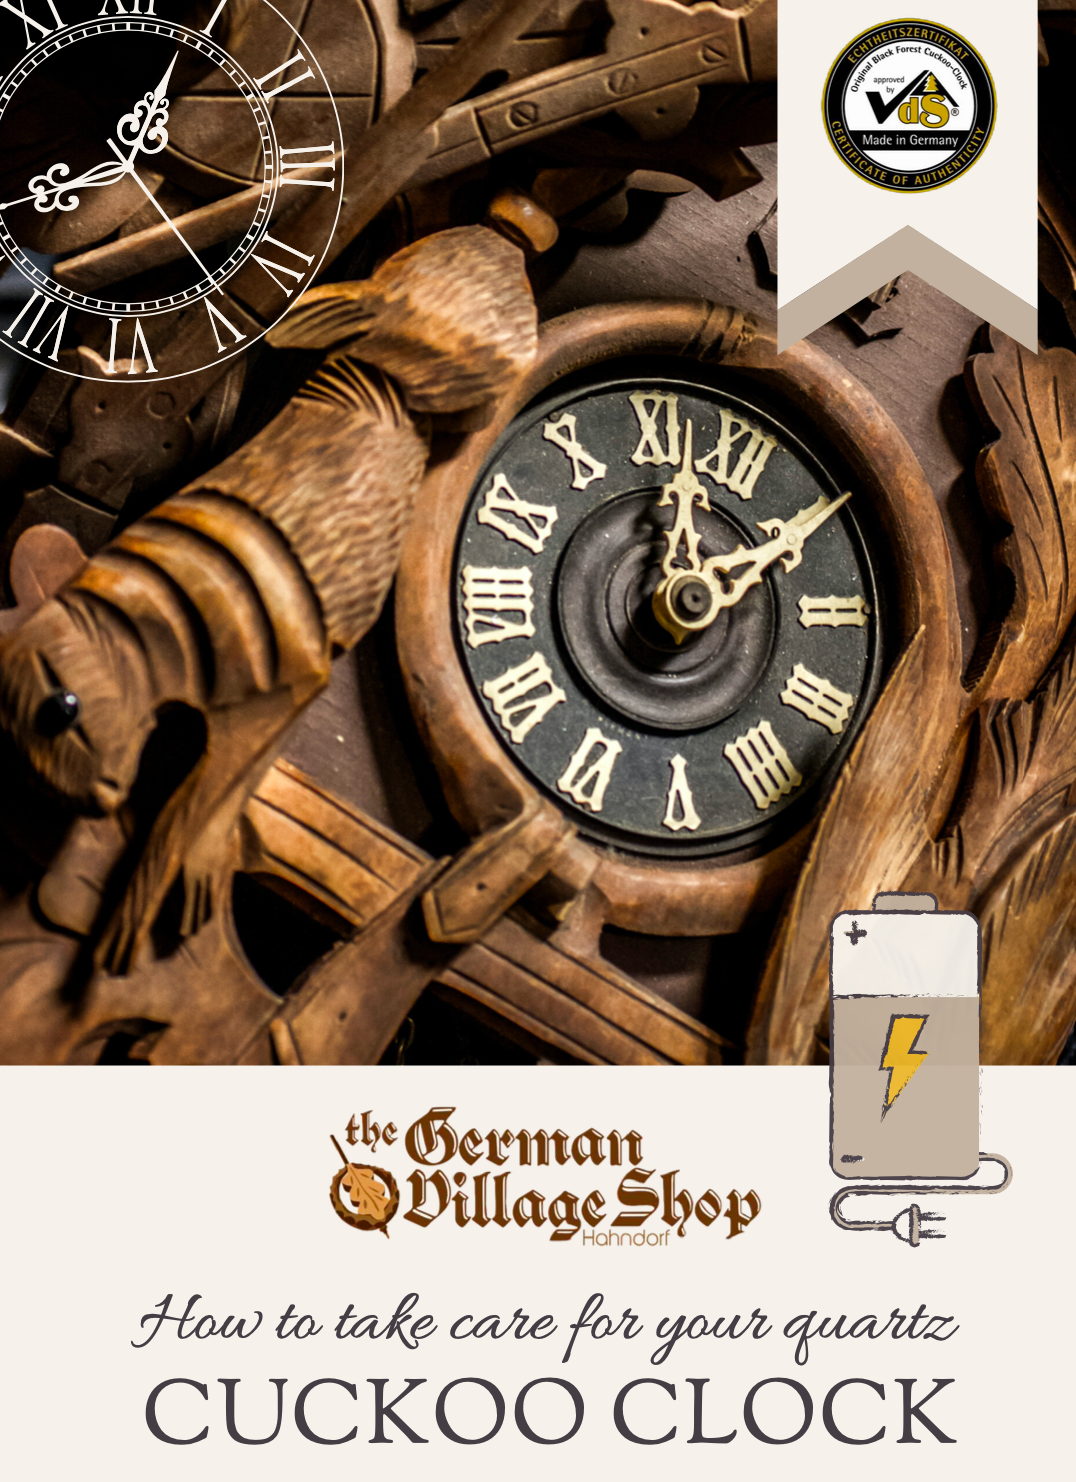 Battery operated Cuckoo Clock care PDF from The German Village Shop